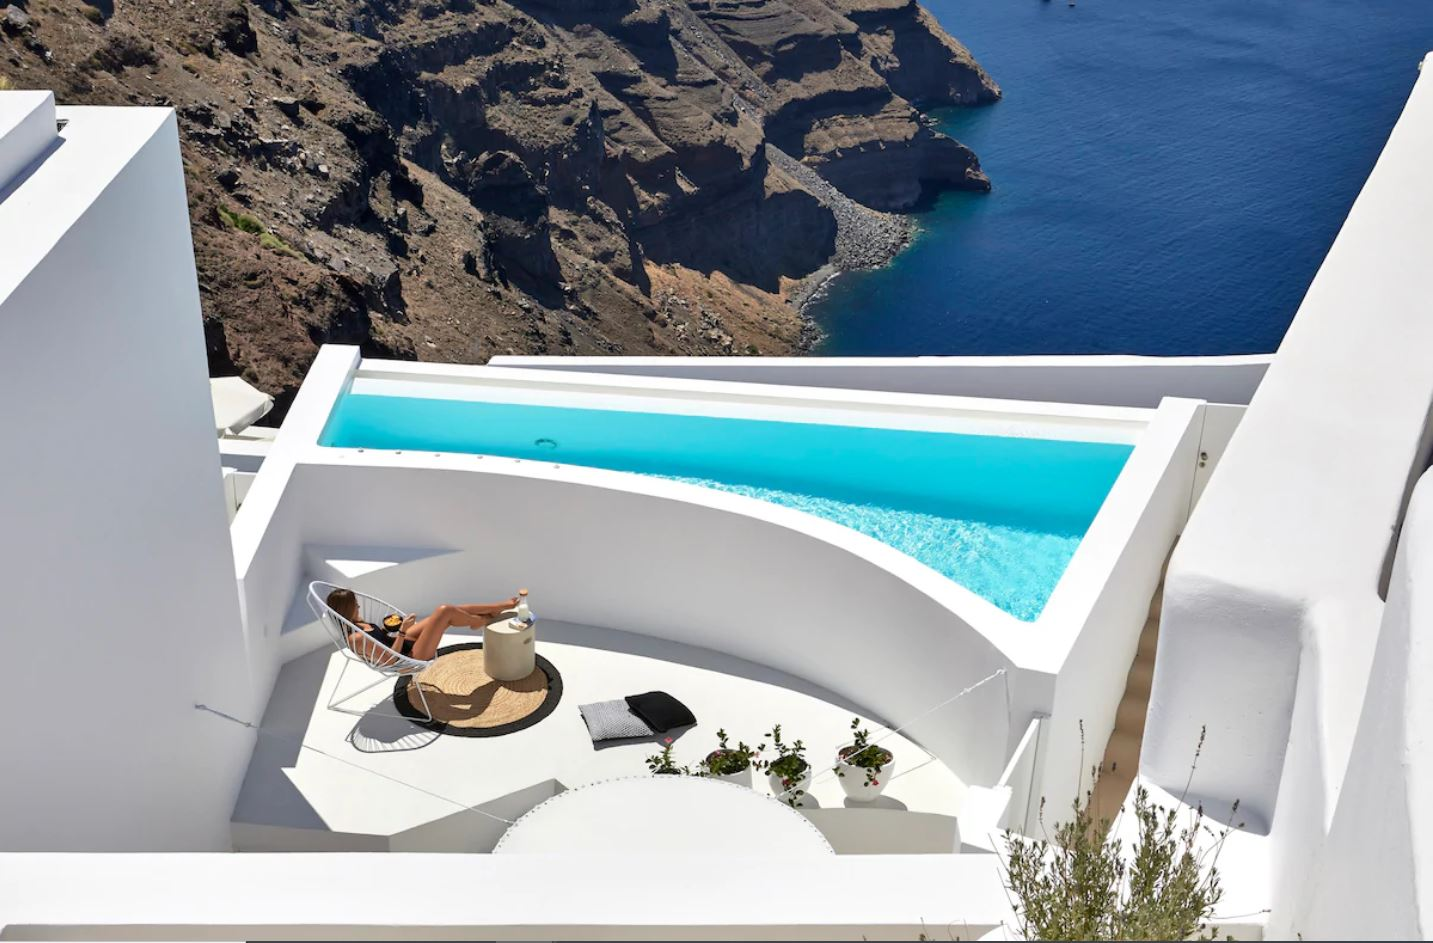 4. Exquisite Serviced Apartment with Stunning Pool & Views